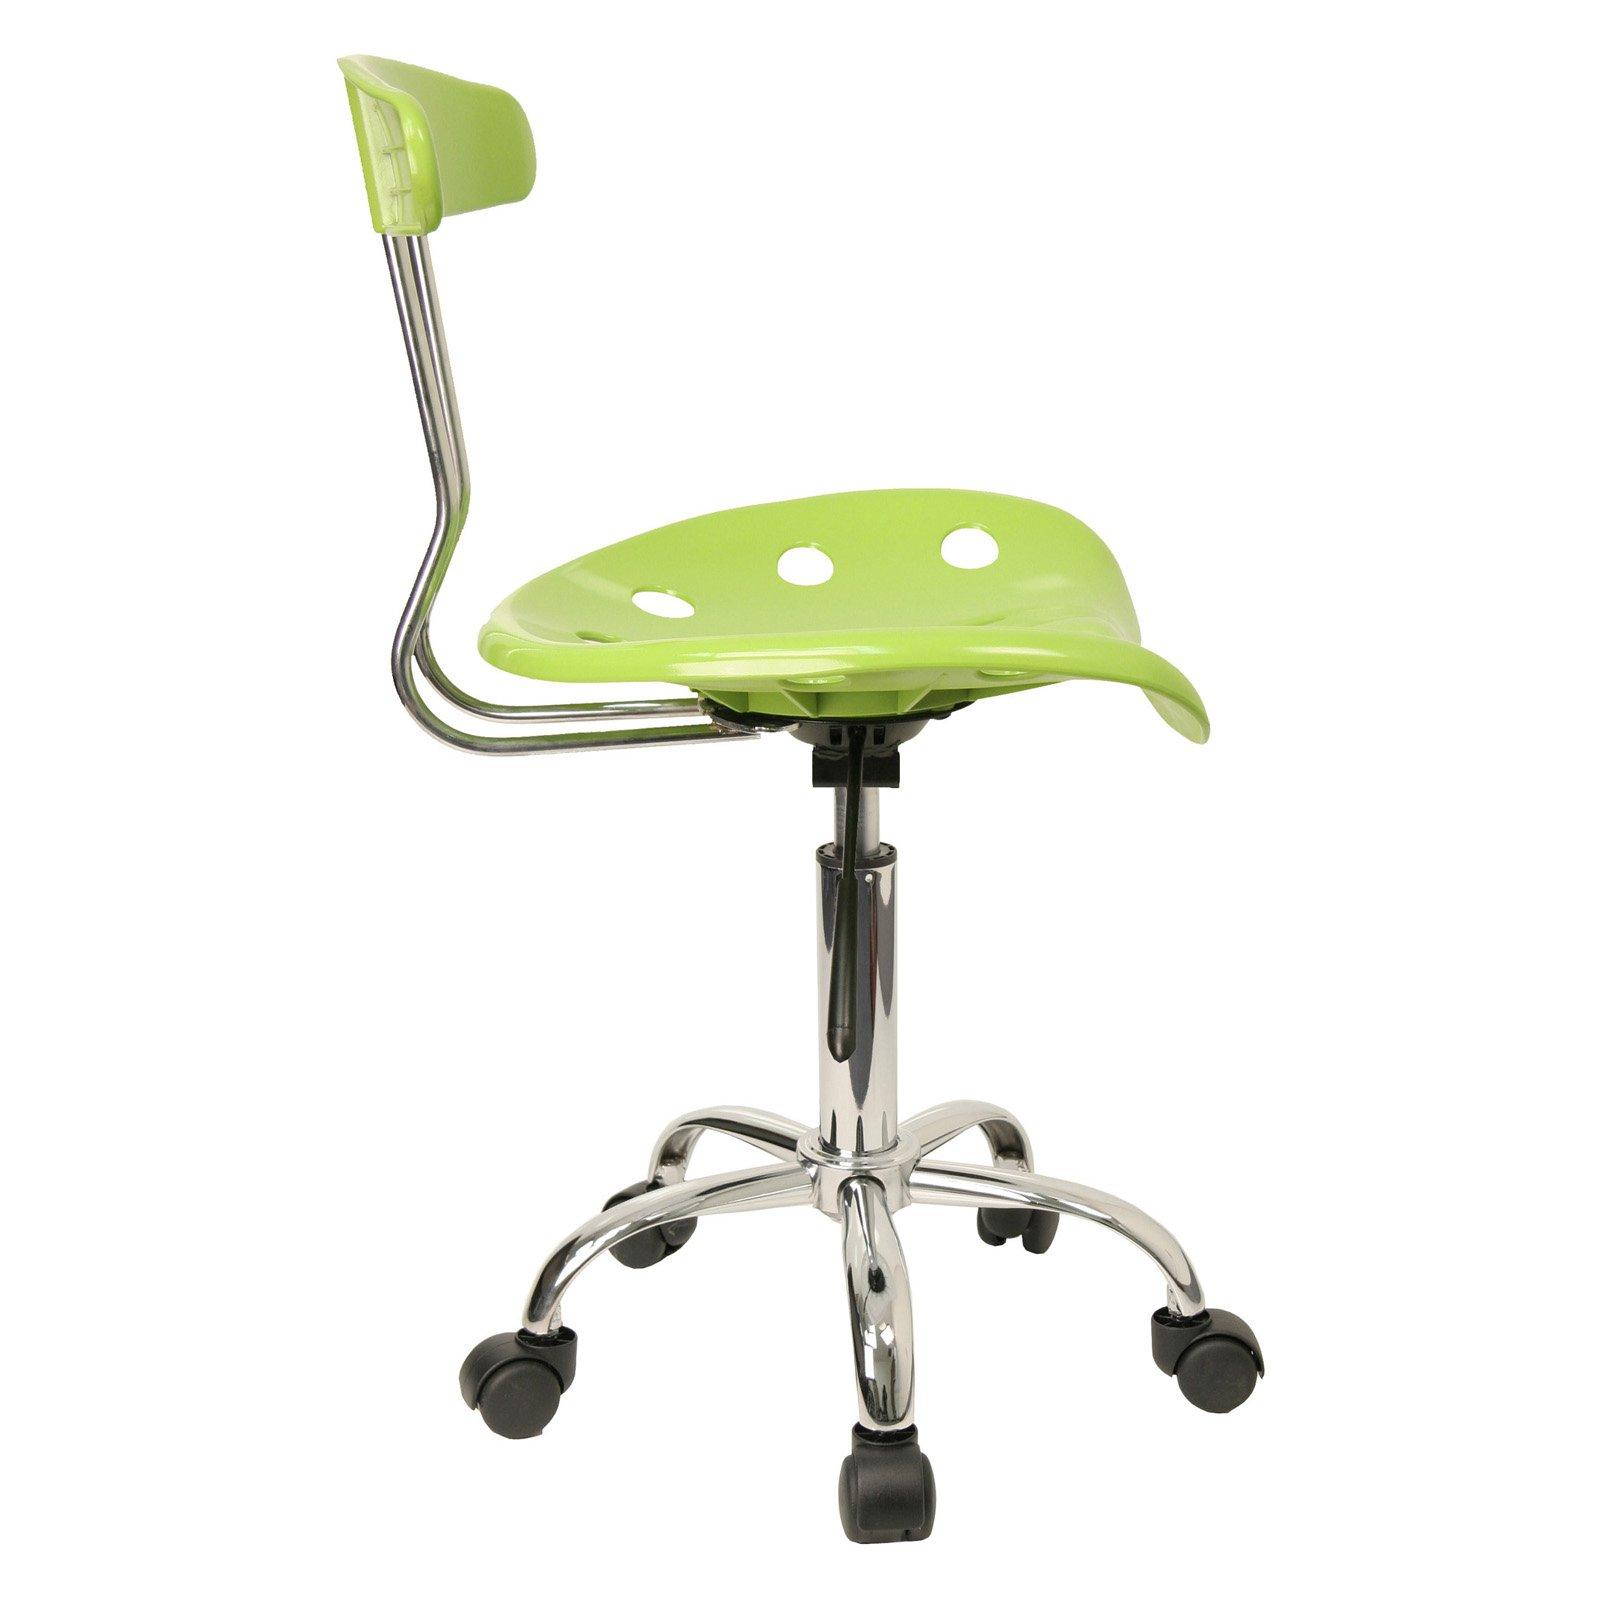 Superieur Computer Task Chair With Tractor Seat, Multiple Colors   Walmart.com